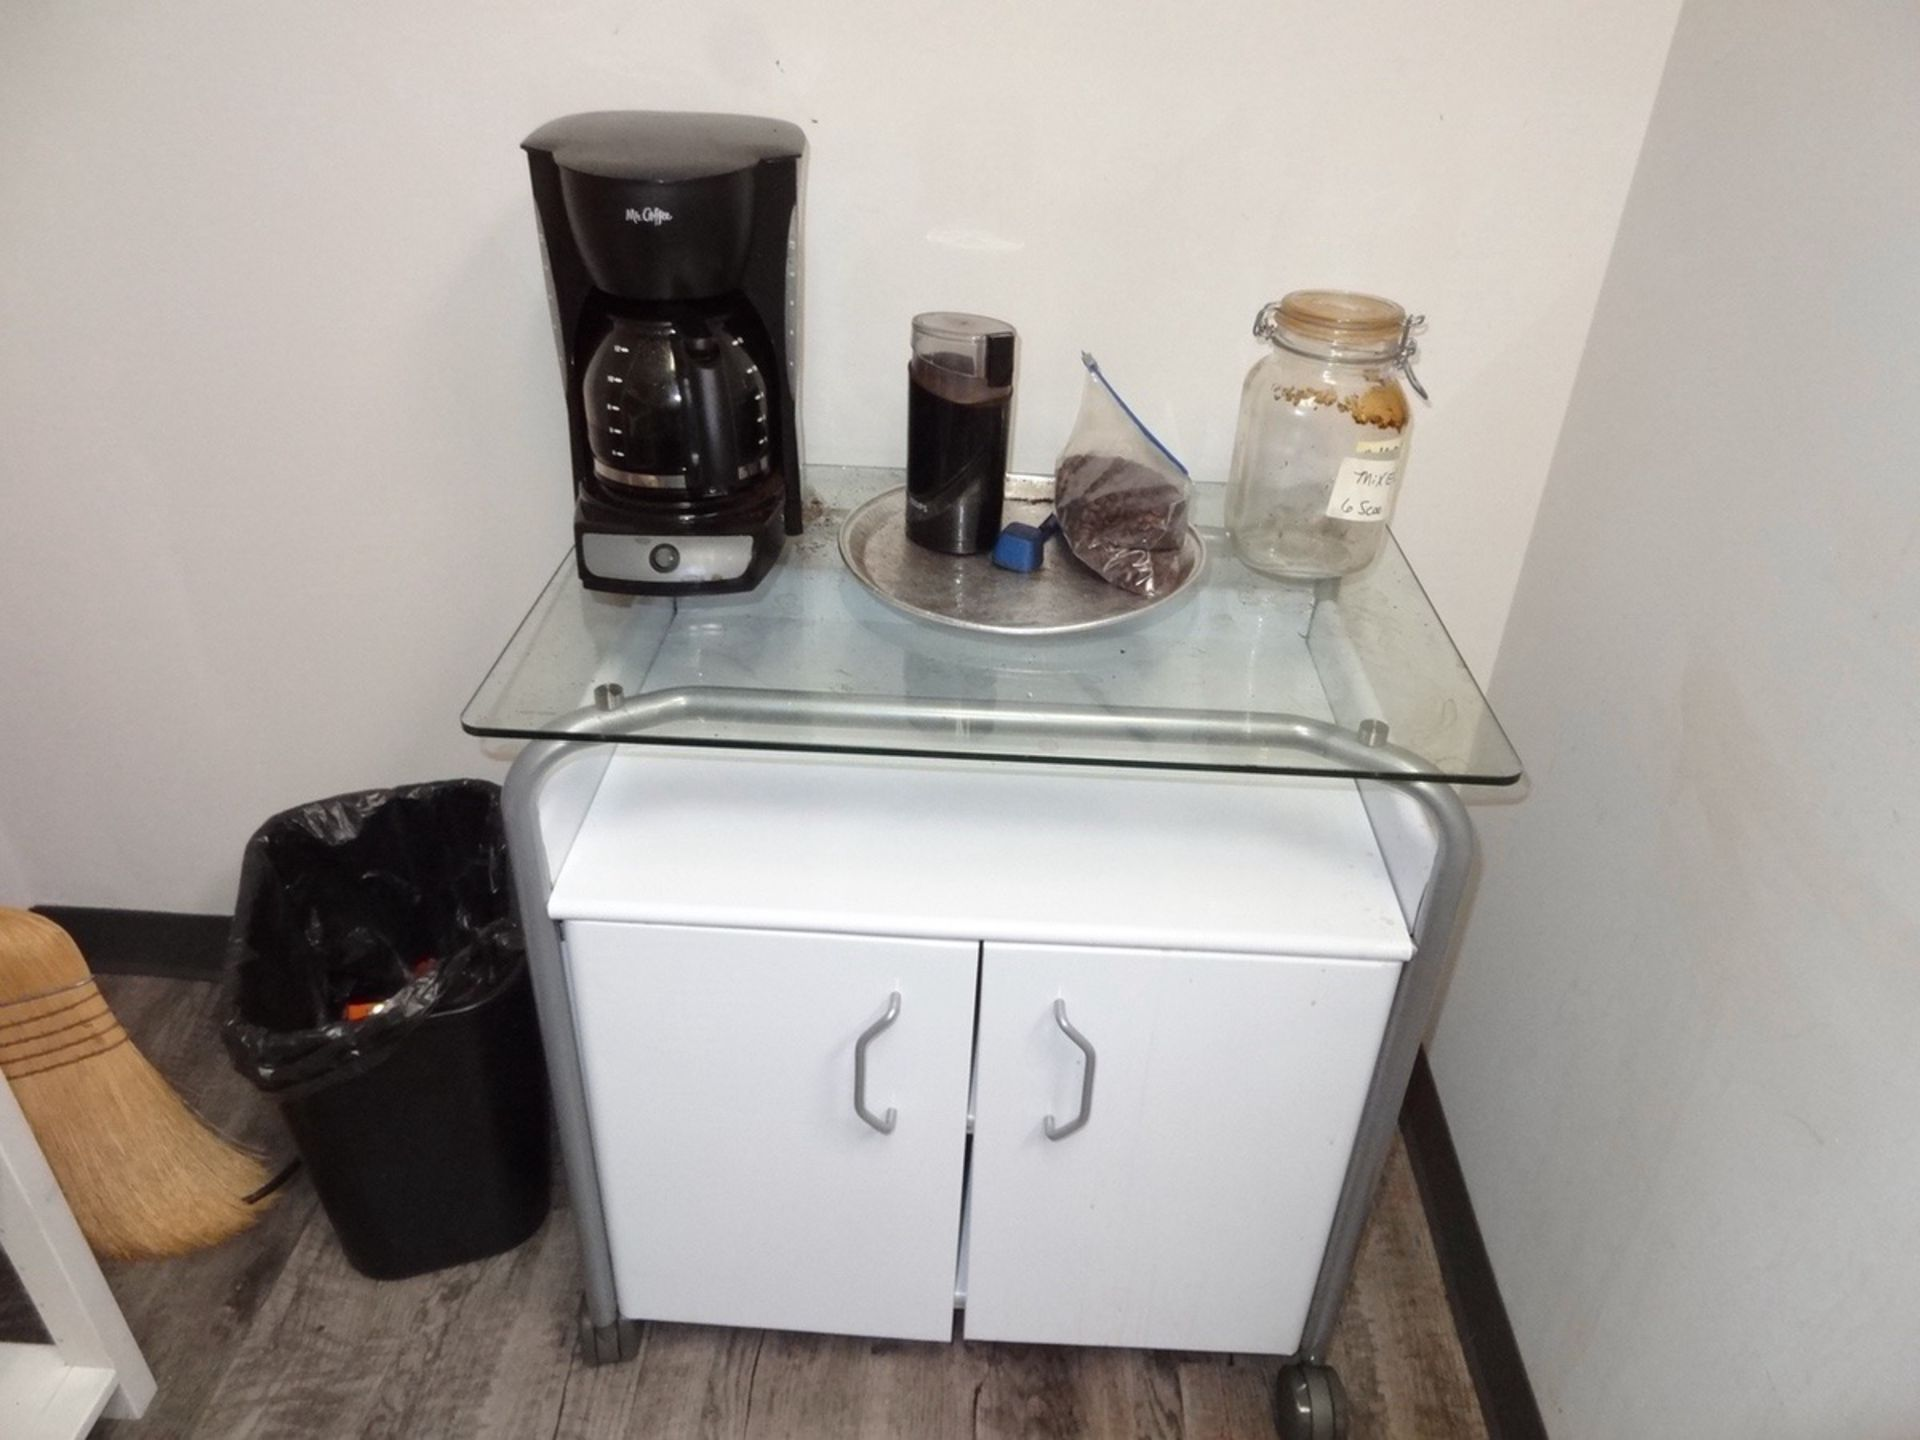 Lot 152 - Office Supply Room - Refrigerator/Freezer, Shelving Contents, Coffee She   Rig Fee: See Full Desc